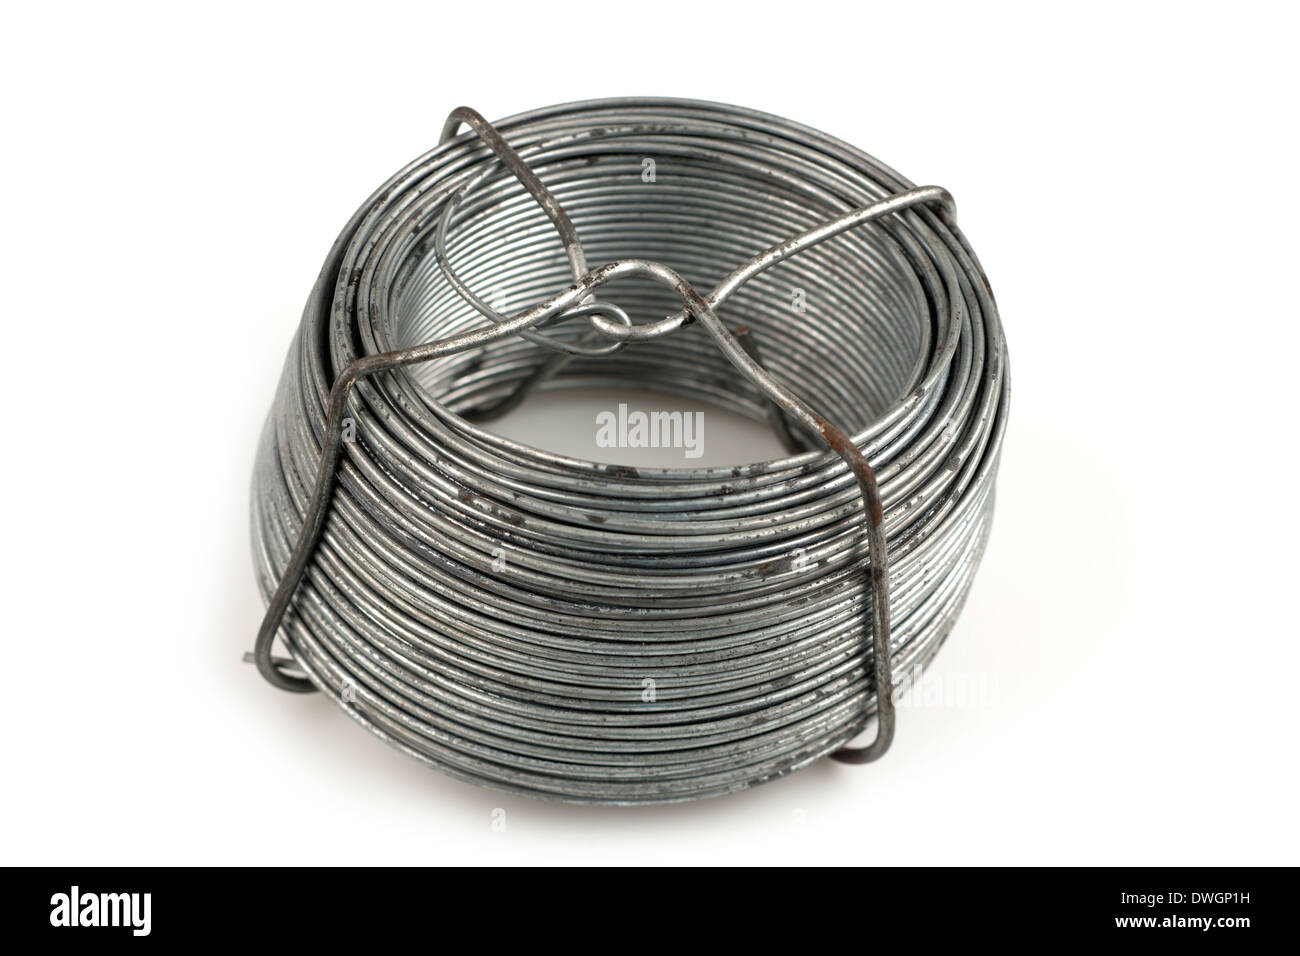 Wire Spool Stock Photos & Wire Spool Stock Images - Alamy